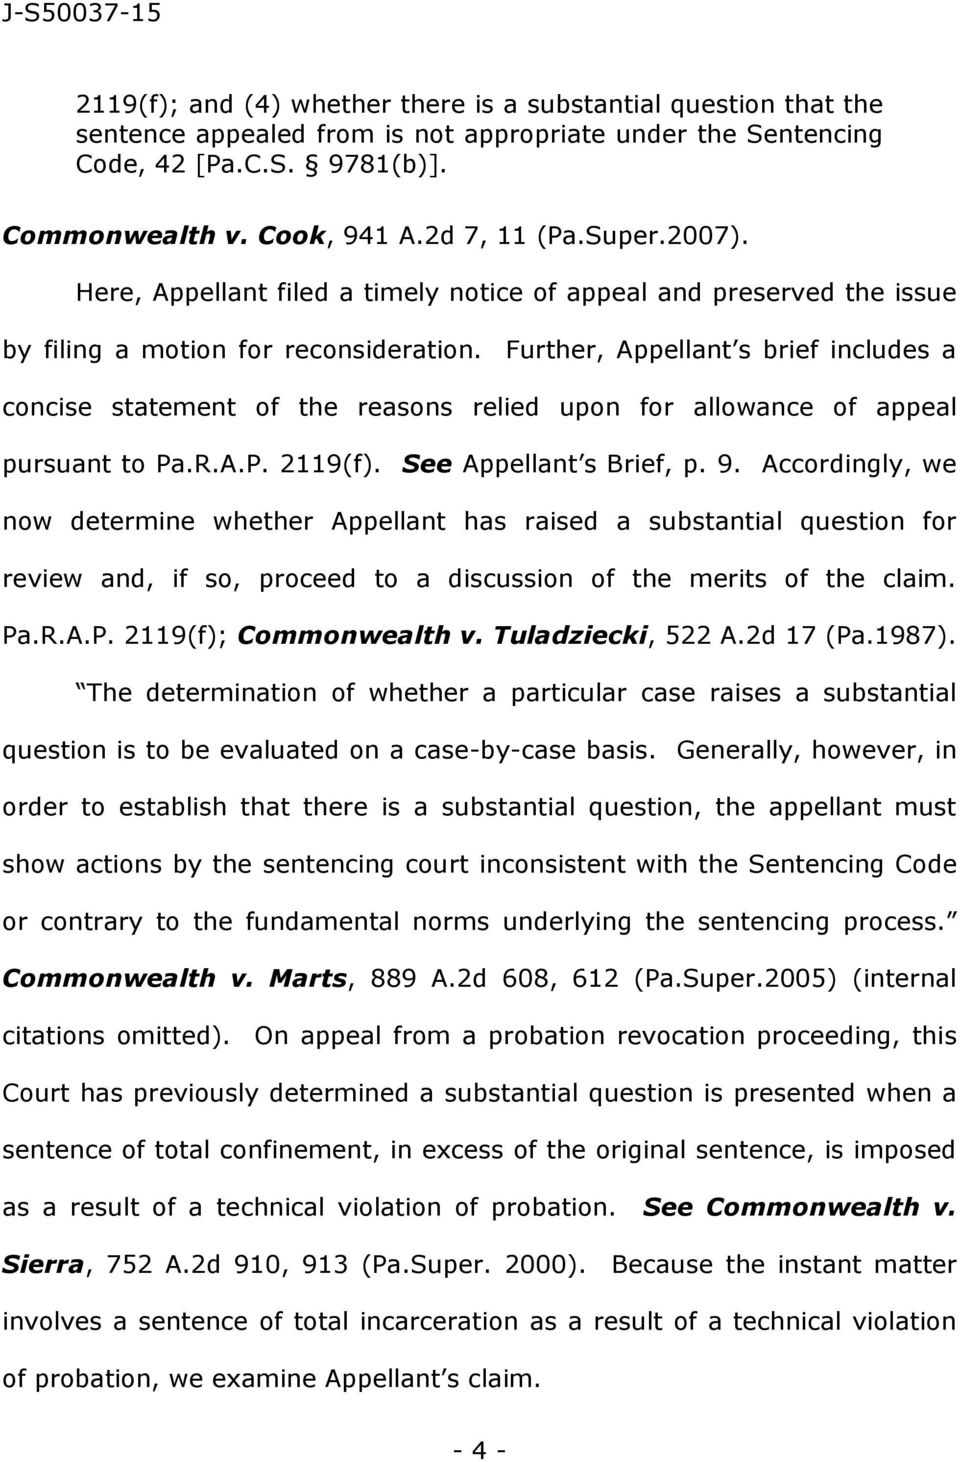 Further, Appellant s brief includes a concise statement of the reasons relied upon for allowance of appeal pursuant to Pa.R.A.P. 2119(f). See Appellant s Brief, p. 9.